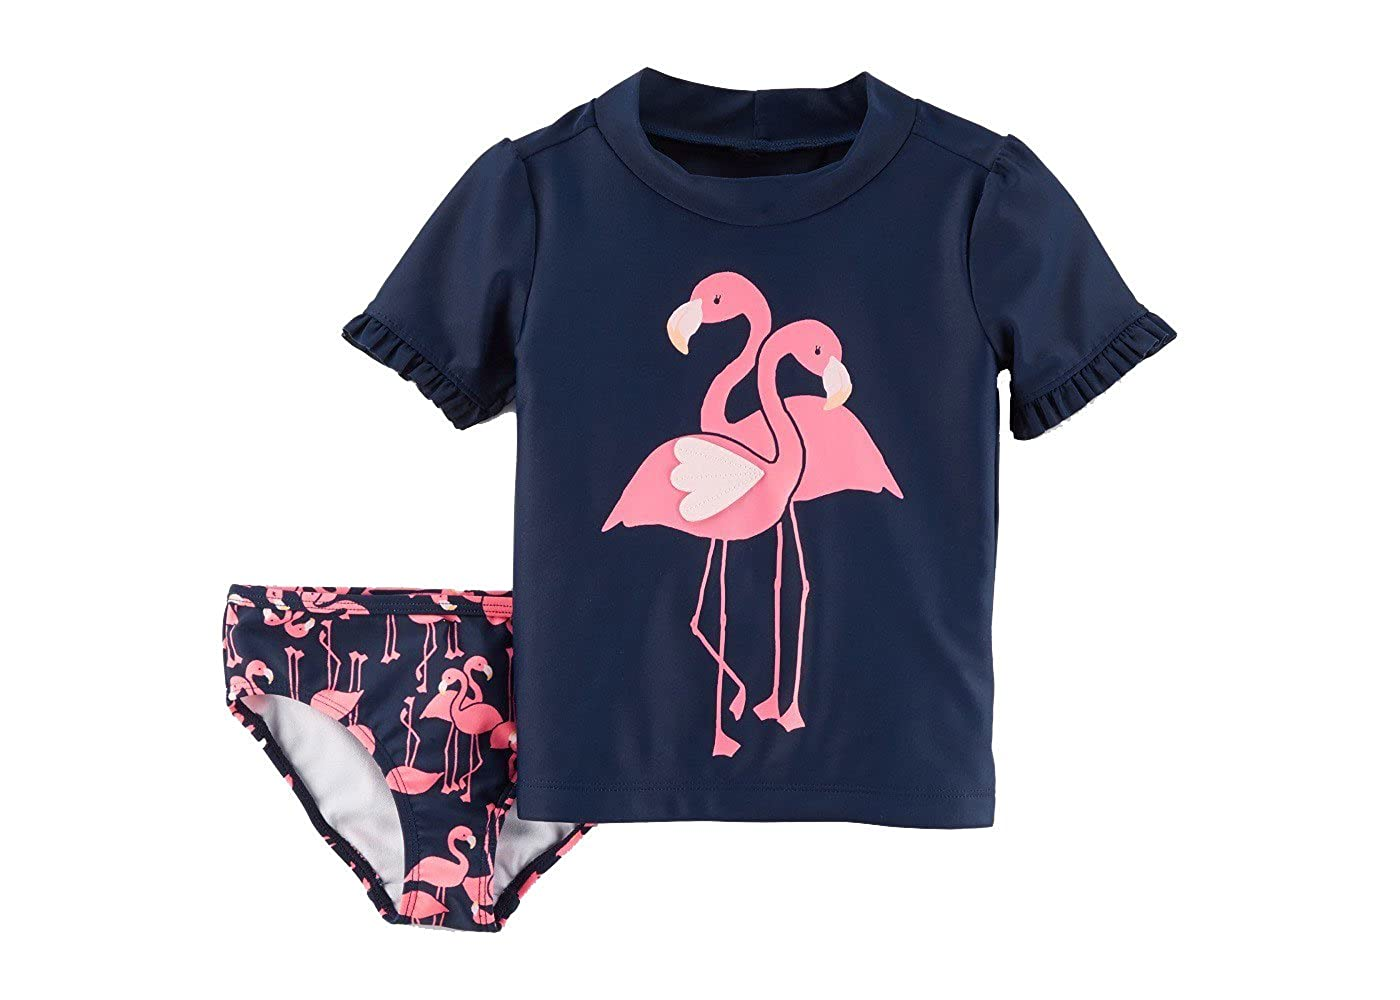 a67d6b6f0 Flamingo Graphic on Shirt and Bottoms Your girl is sure to be the life of  the pool party in the Flamingo Rash Guard Set from Just One You made by  Carter's.